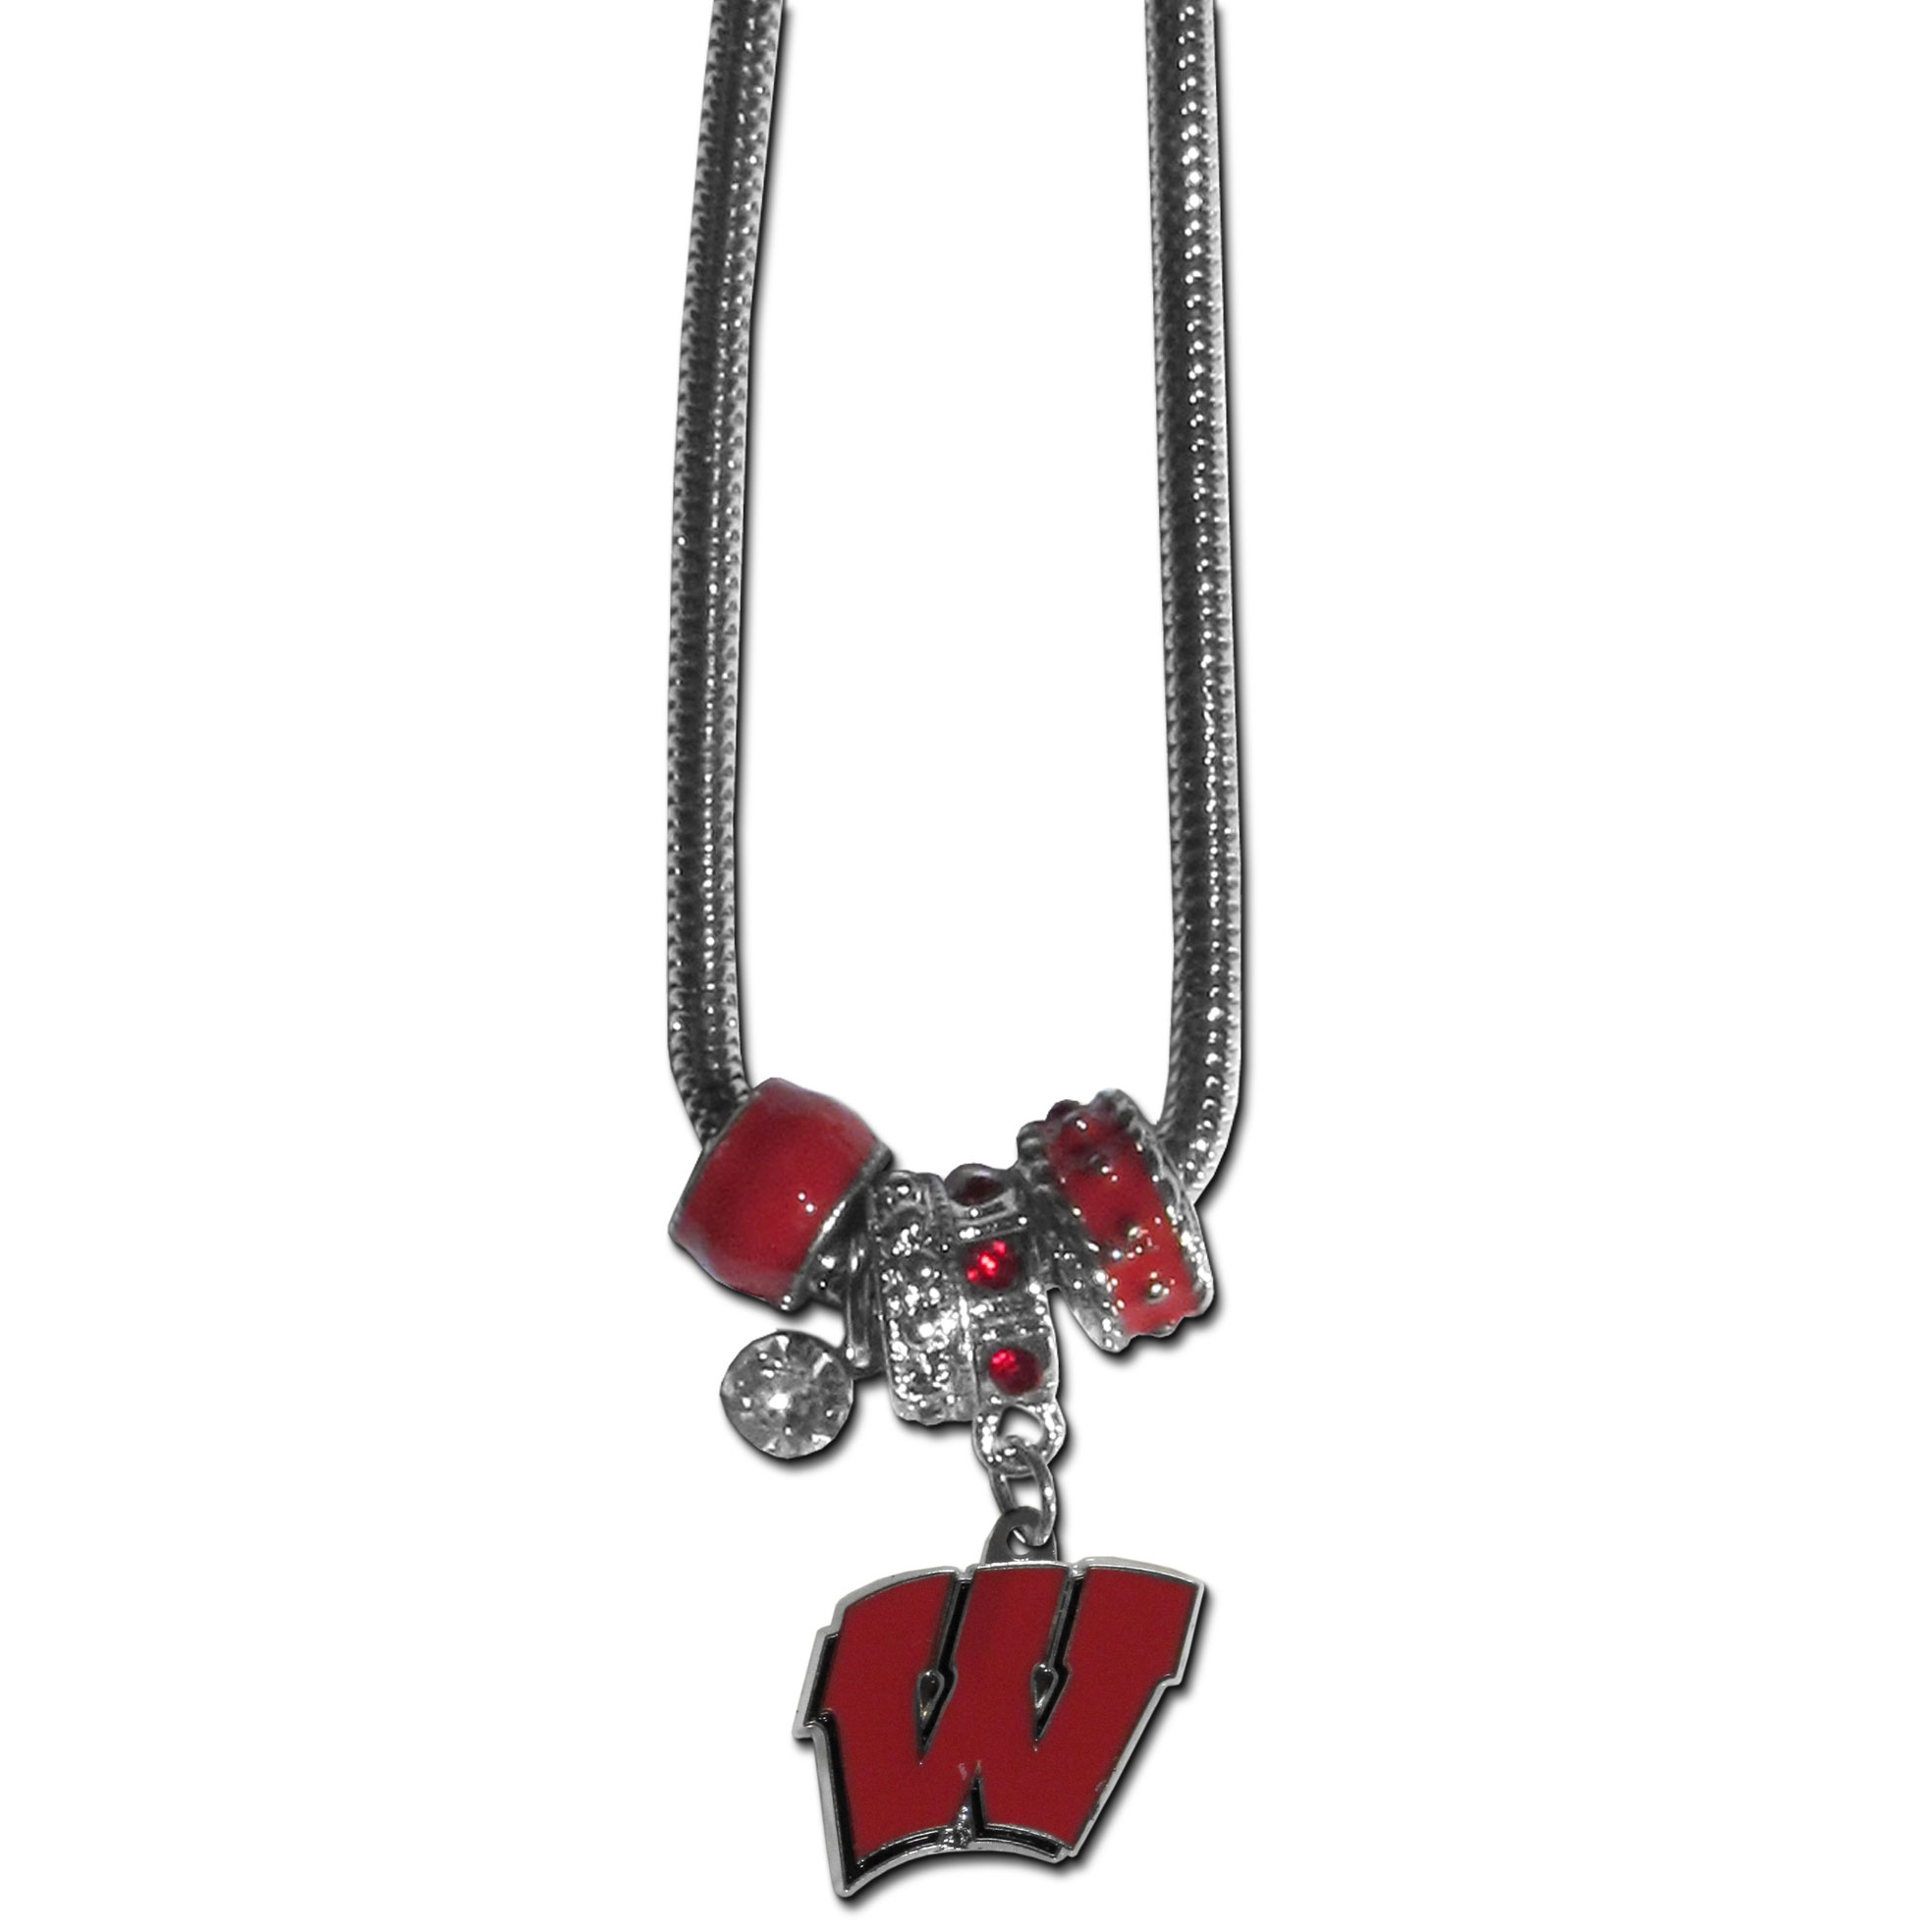 Wisconsin Badgers Euro Bead Necklace - We have combined the wildly popular Euro style beads with your favorite team to create our Wisconsin Badgers bead necklace. The 18 inch snake chain features 4 Euro beads with enameled team colors and rhinestone accents with a high polish, nickel free charm and rhinestone charm. Perfect way to show off your team pride.